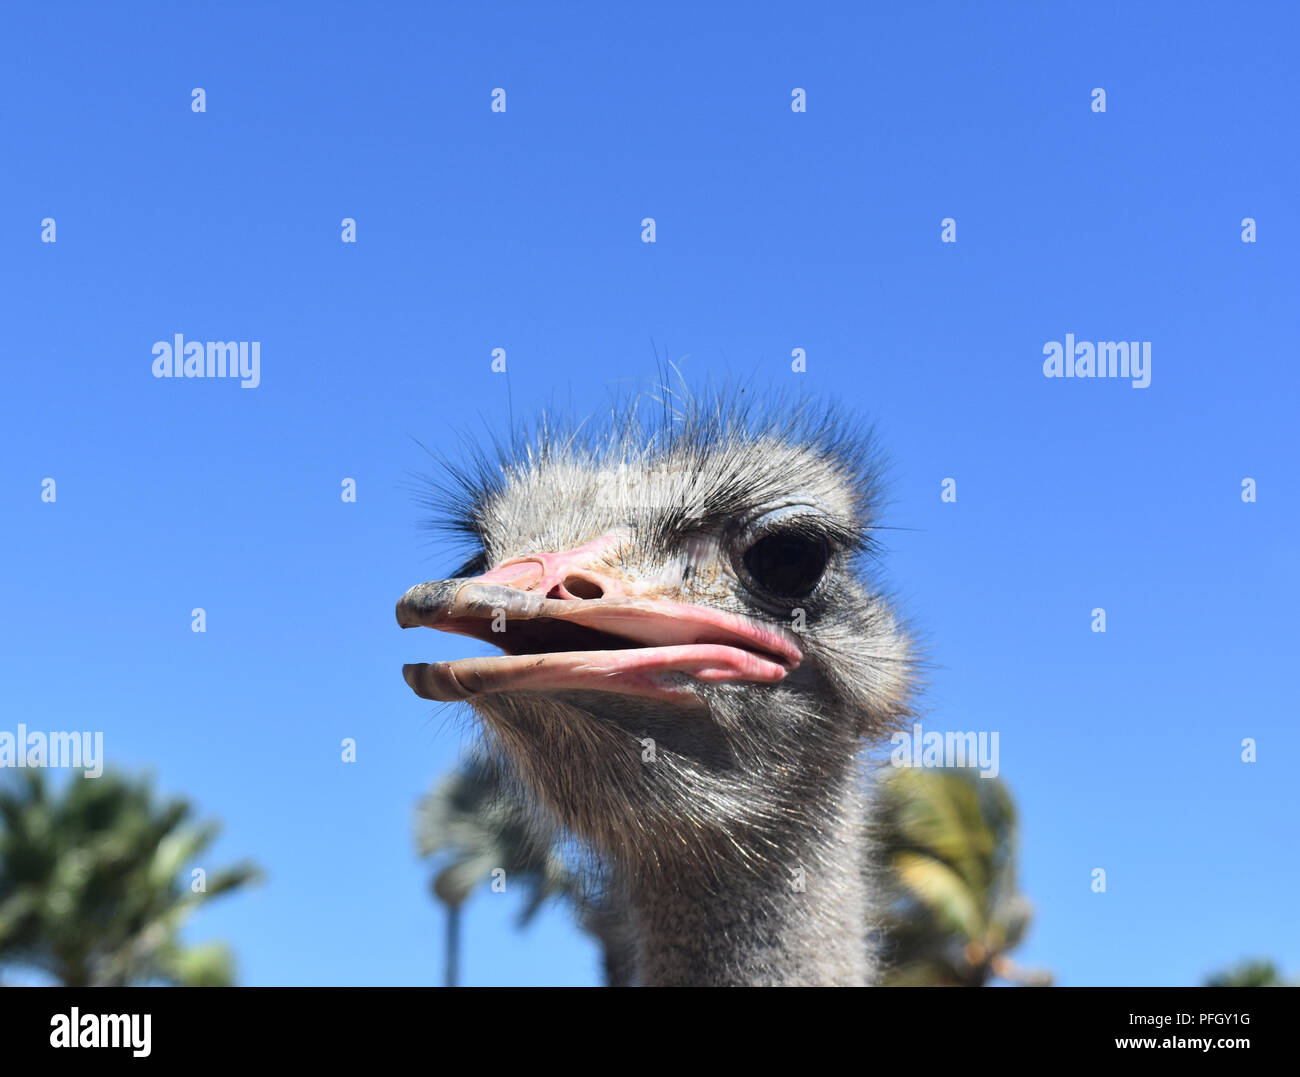 Looking closely into the face of an ostrich. Stock Photo